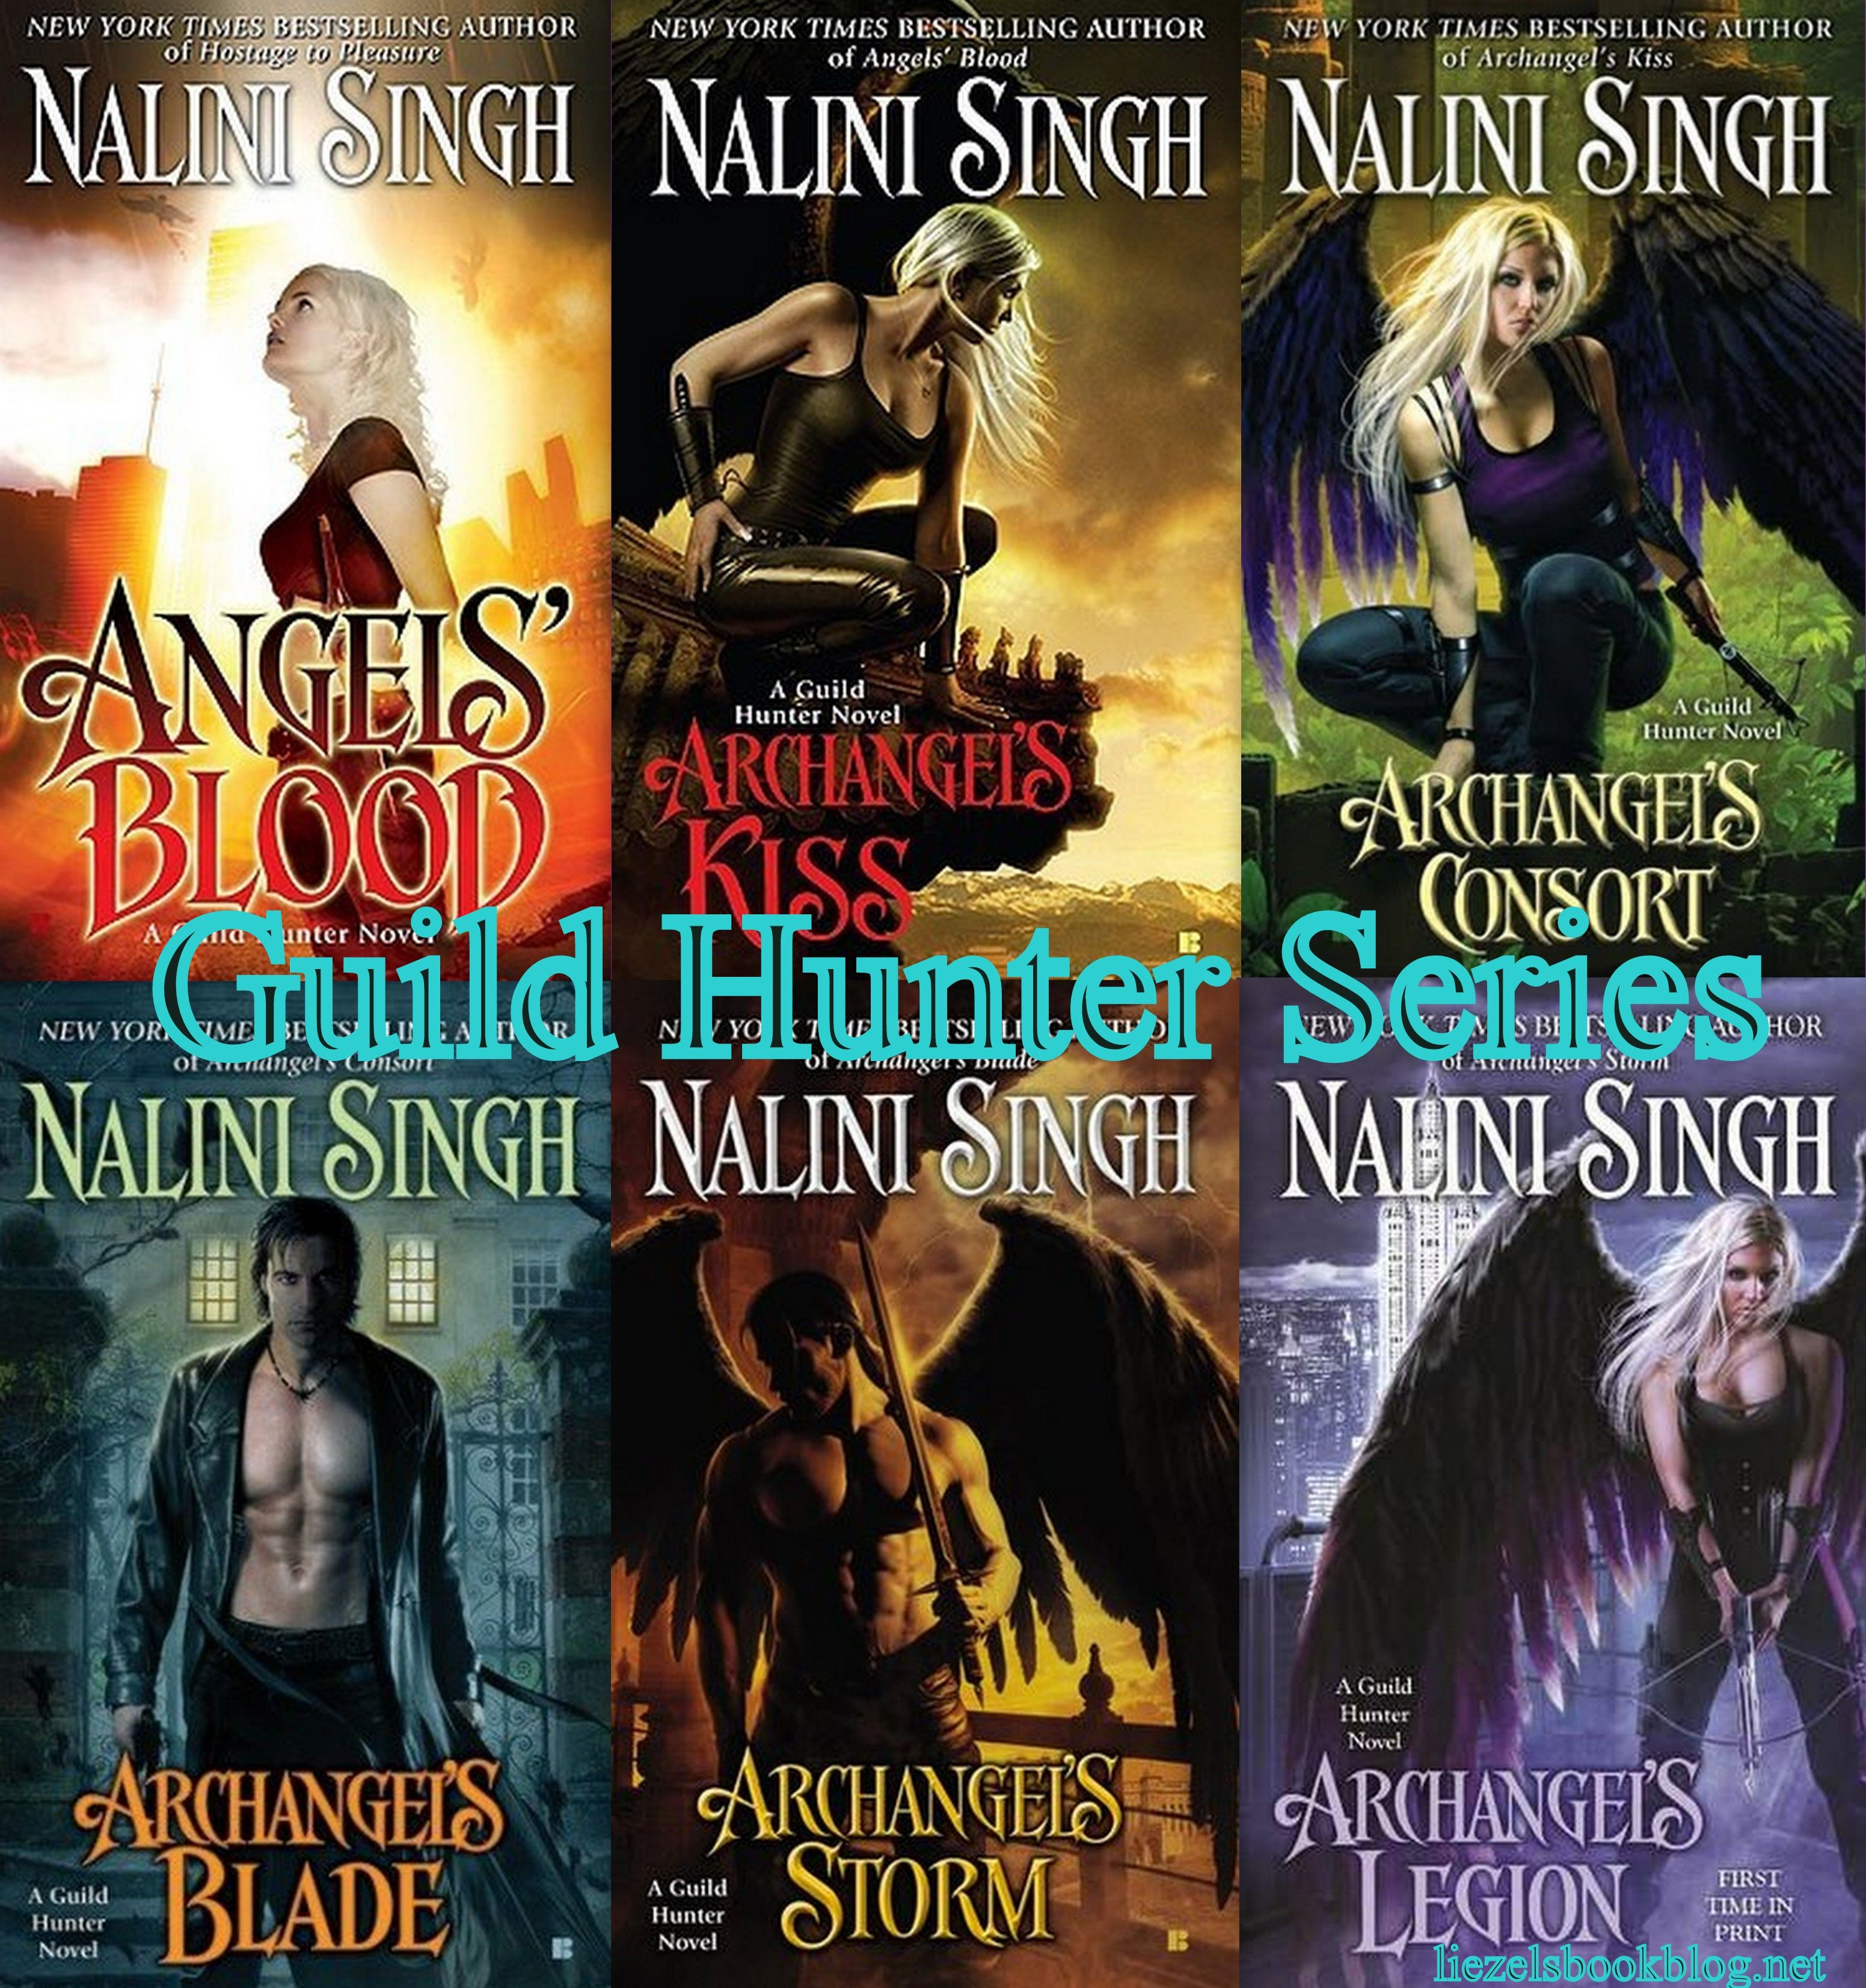 The guild hunter series book 5